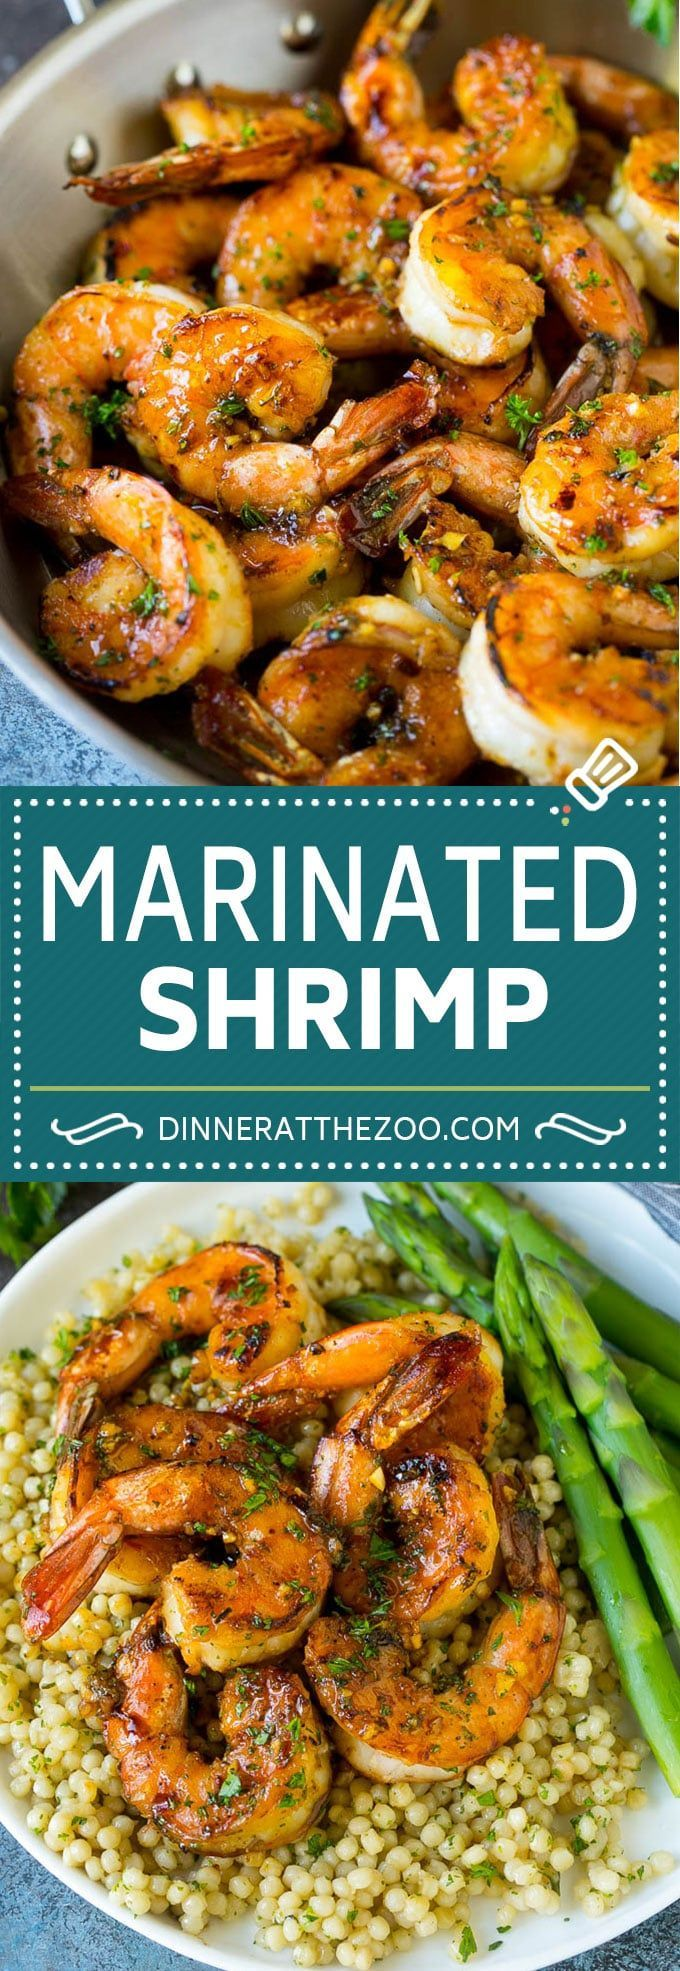 Shrimp Marinade - Dinner at the Zoo